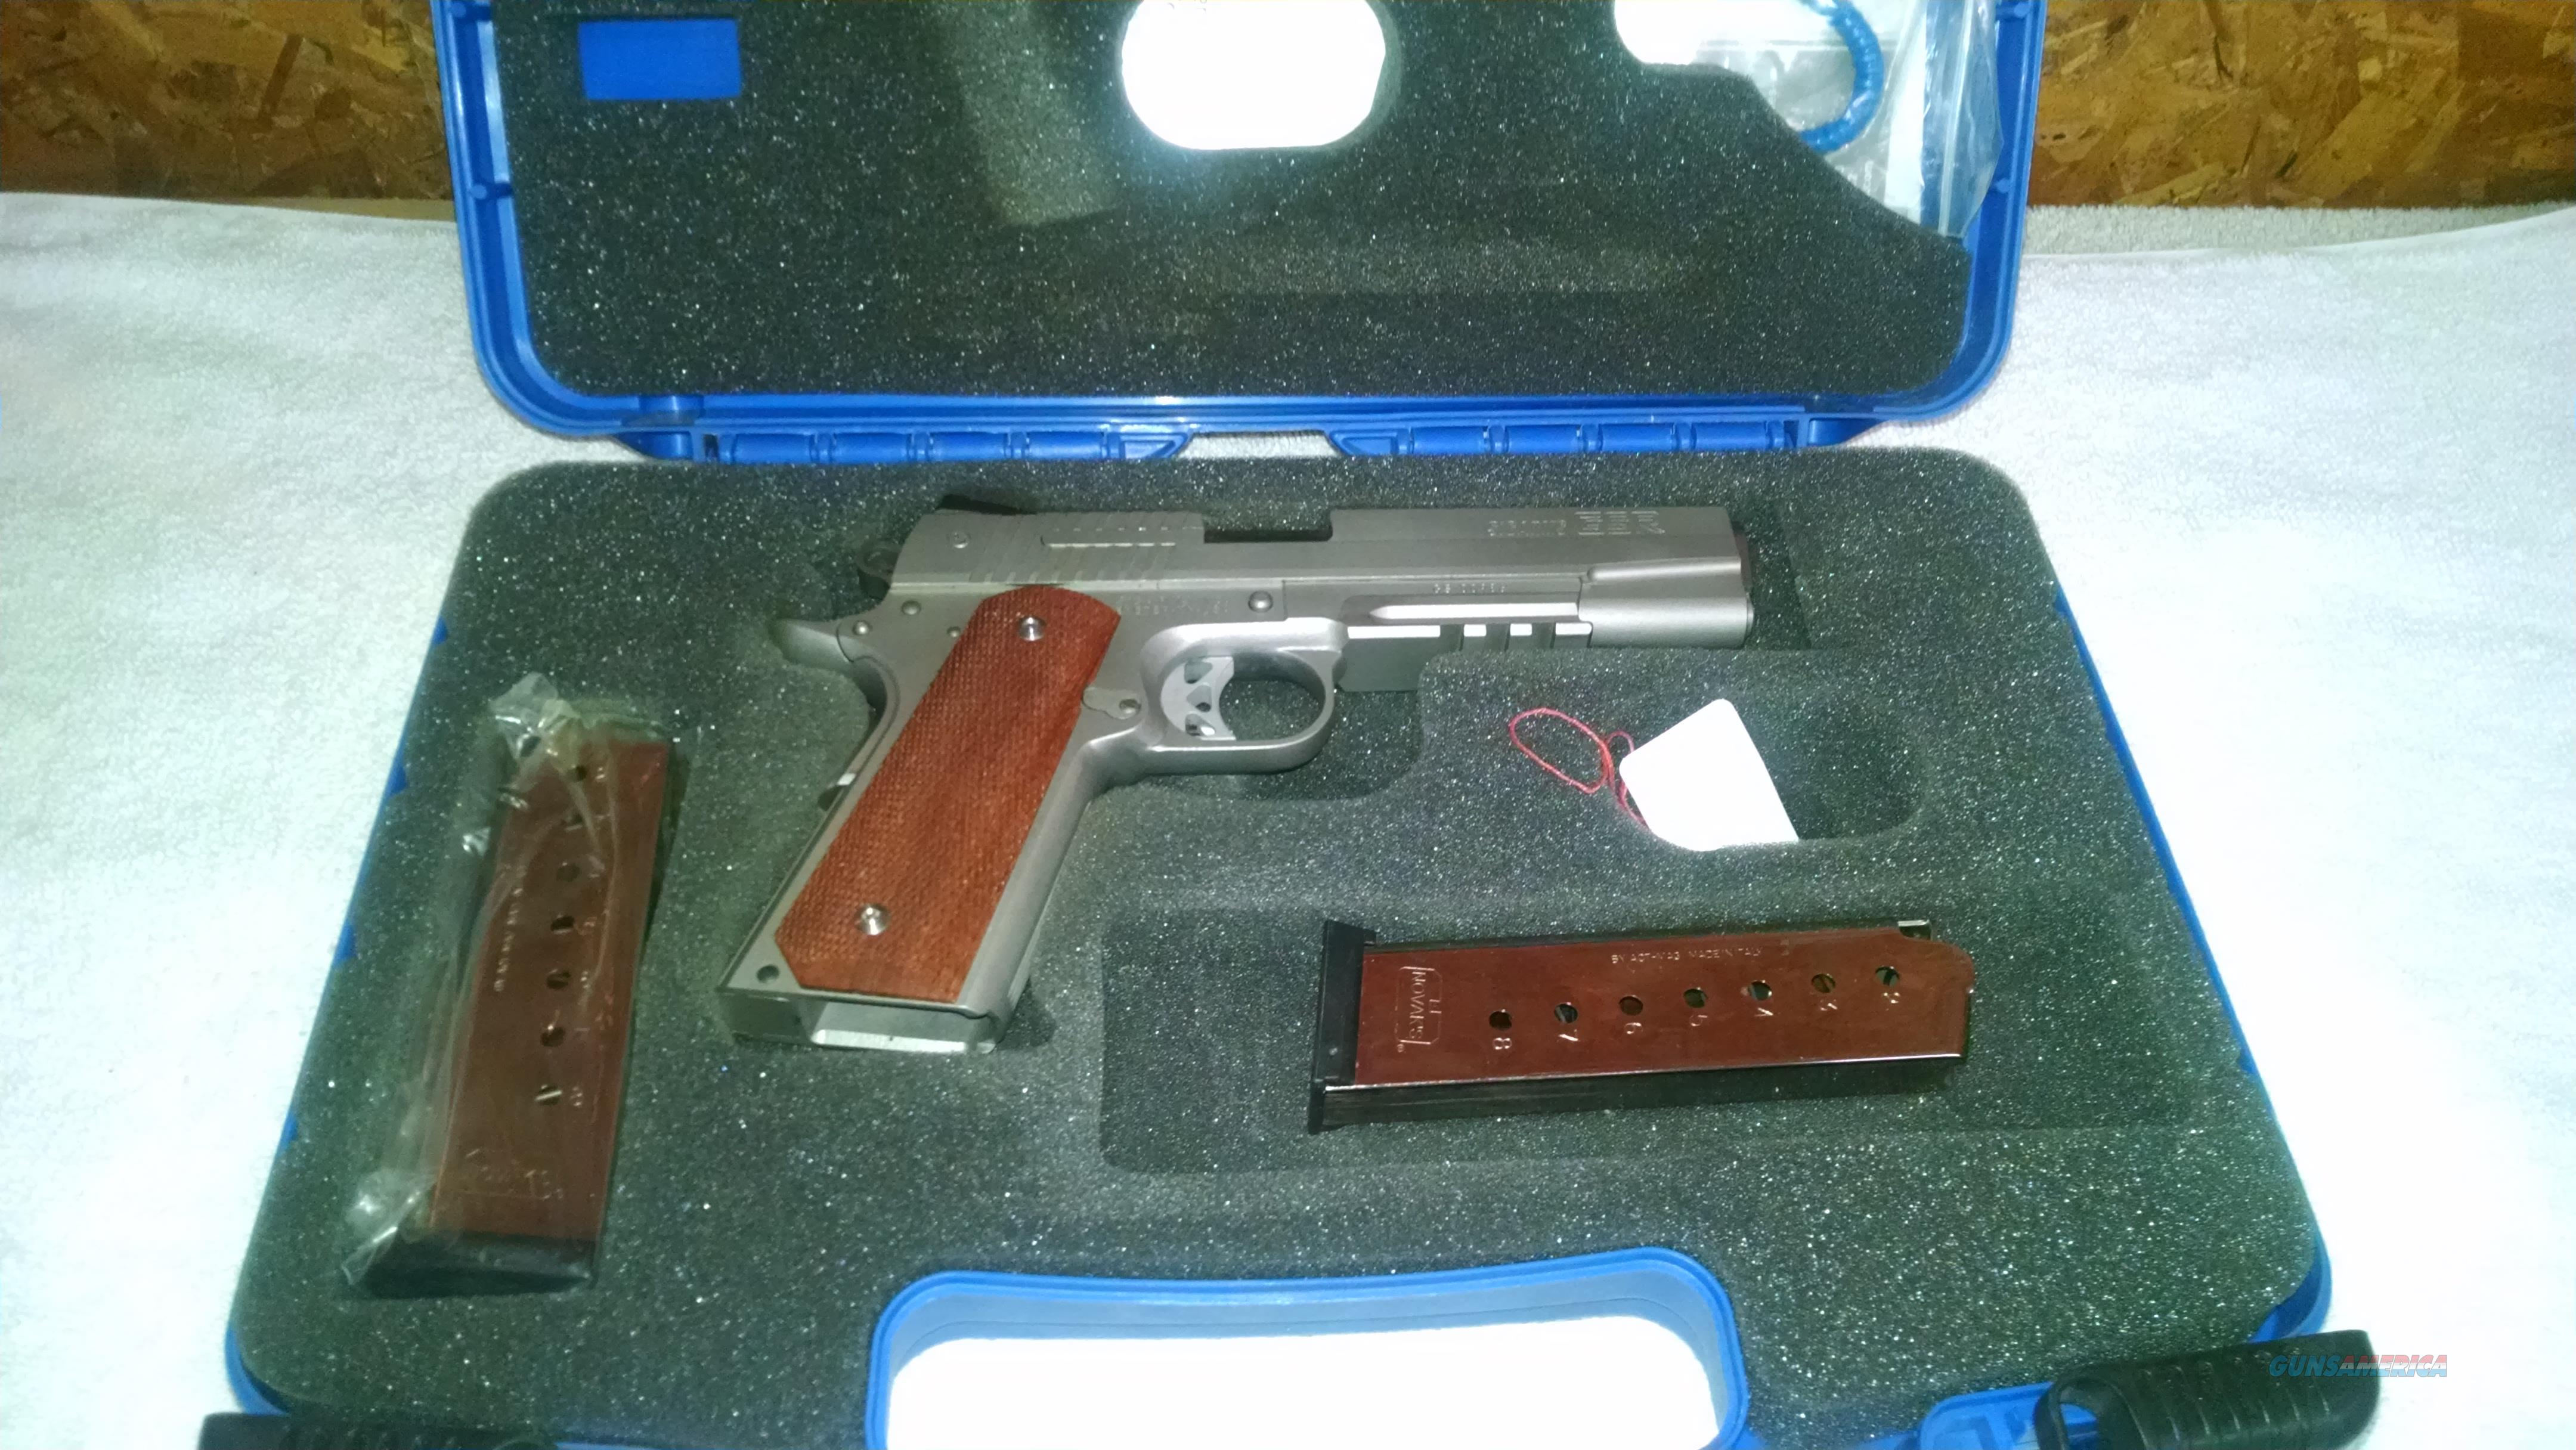 SigArms GSR, 45 ACP, Stainless  Guns > Pistols > Sig - Sauer/Sigarms Pistols > 1911